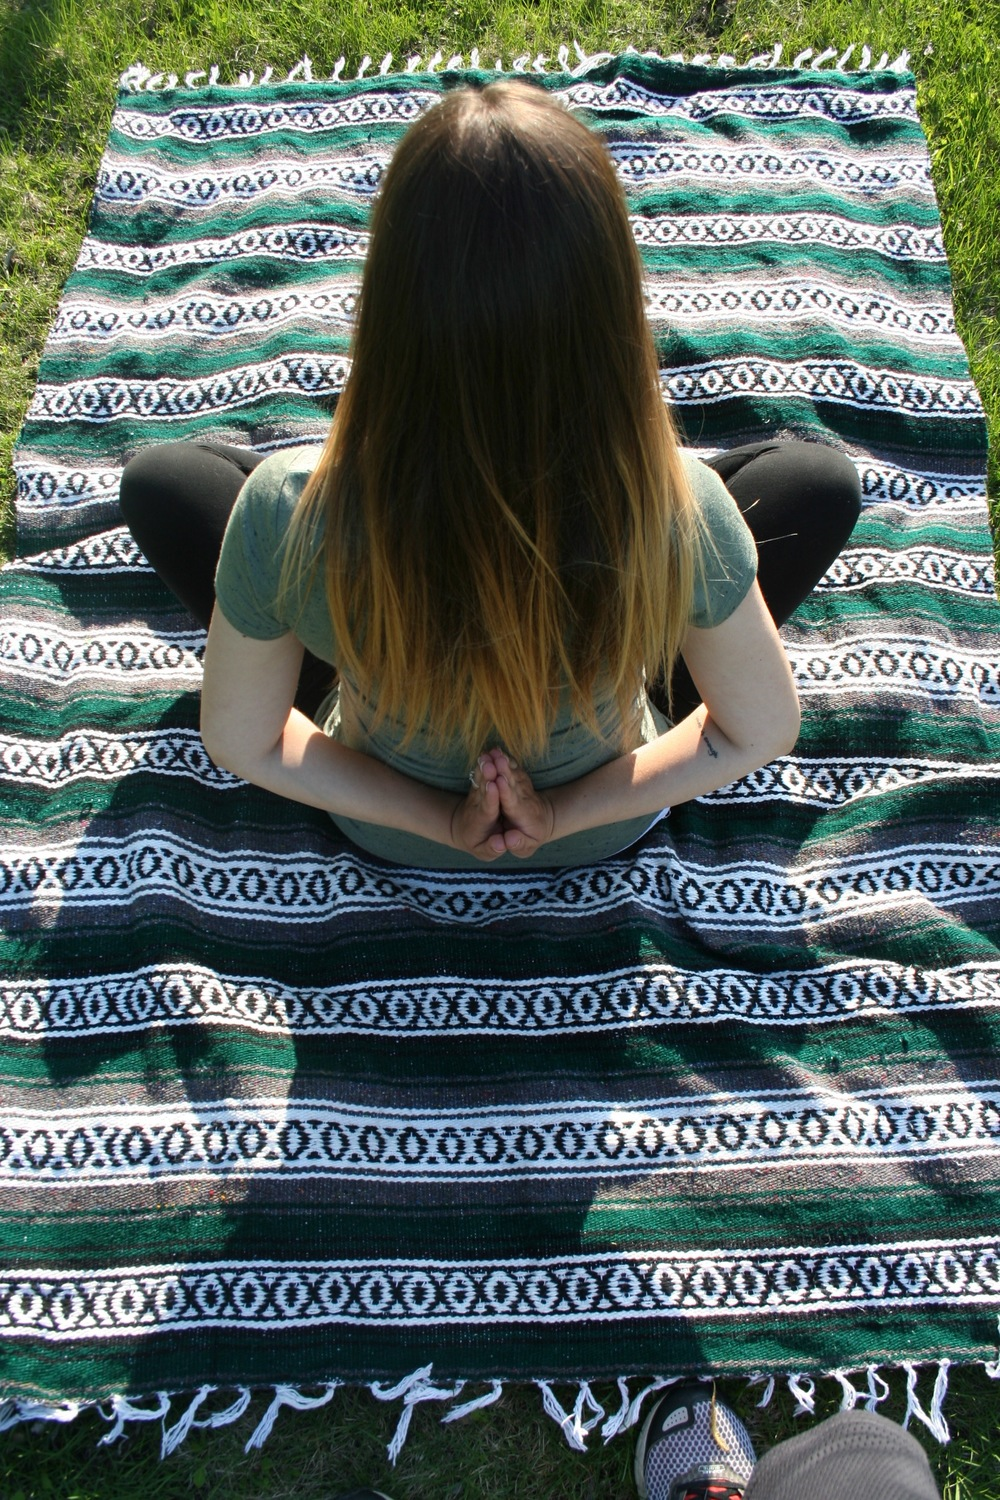 You can check out the Evergreen Falsa Blanket in the Shop tab at the top of the page!